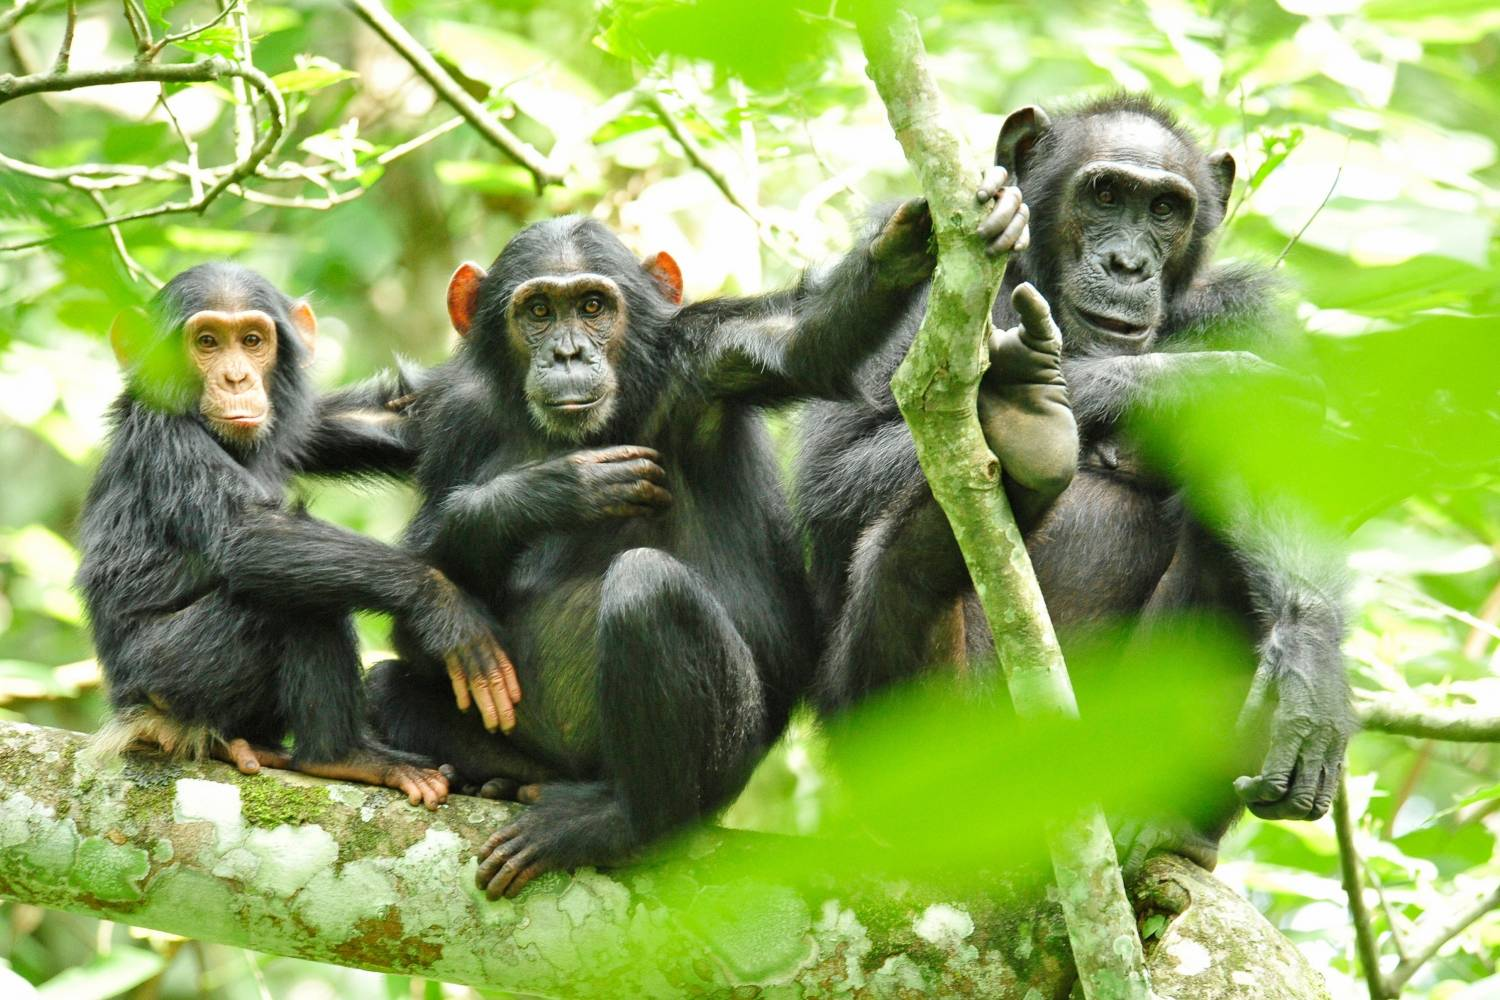 Wildlife Conservation Society, chimpanzees in wild